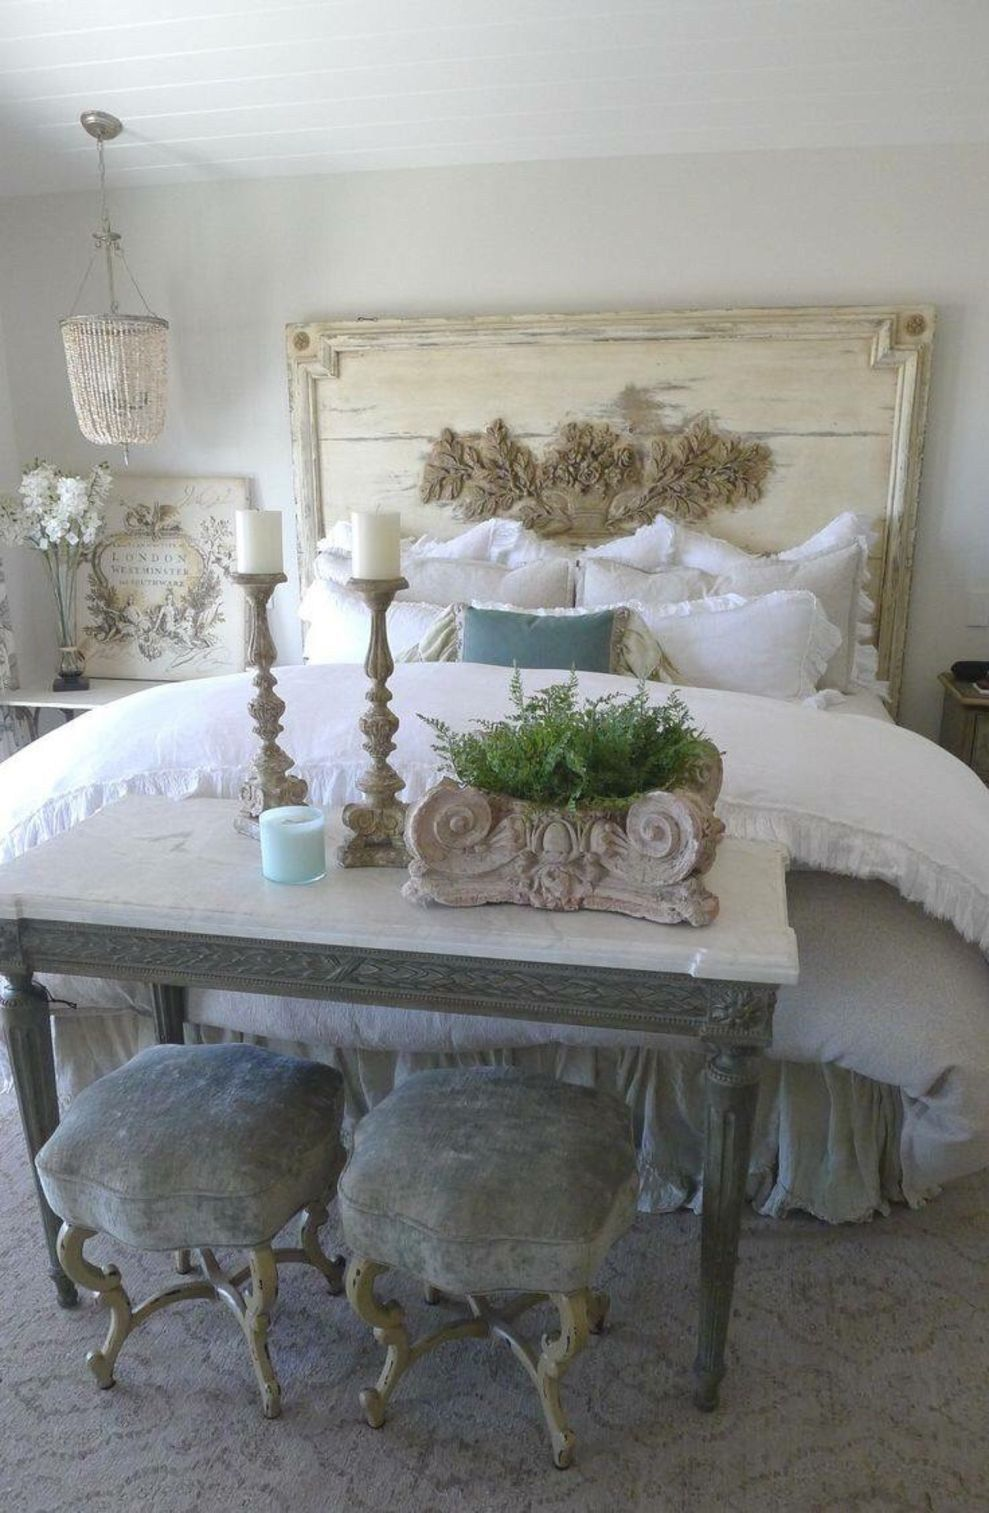 Awesome French Country Bedroom Decoration 40 Shabby Chic Decor